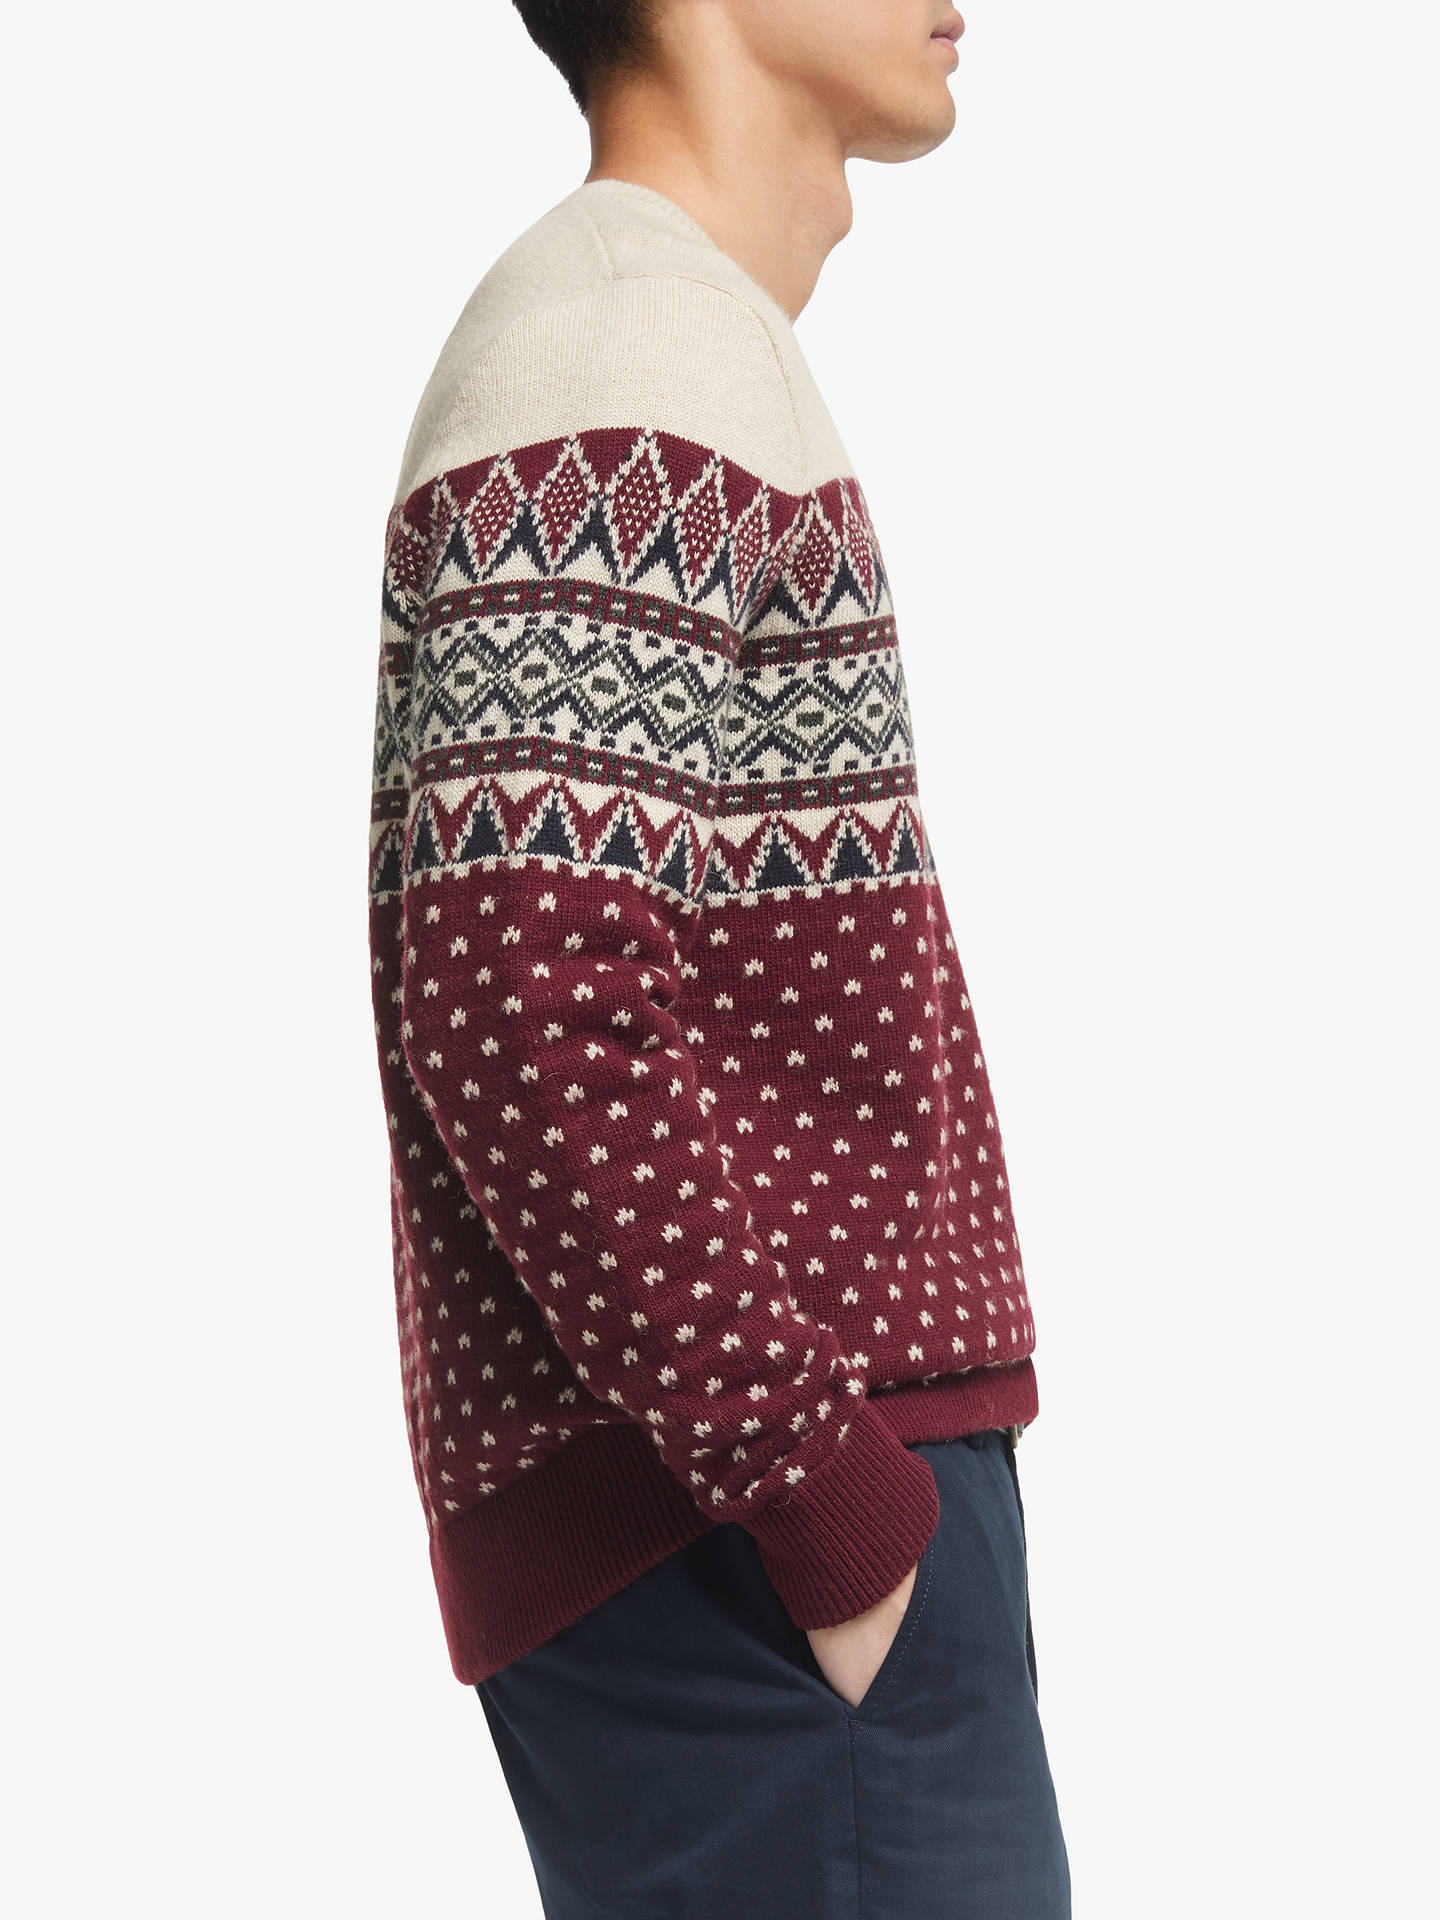 Buy John Lewis & Partners Fair Isle Jumper, Redcurrant, S Online at johnlewis.com